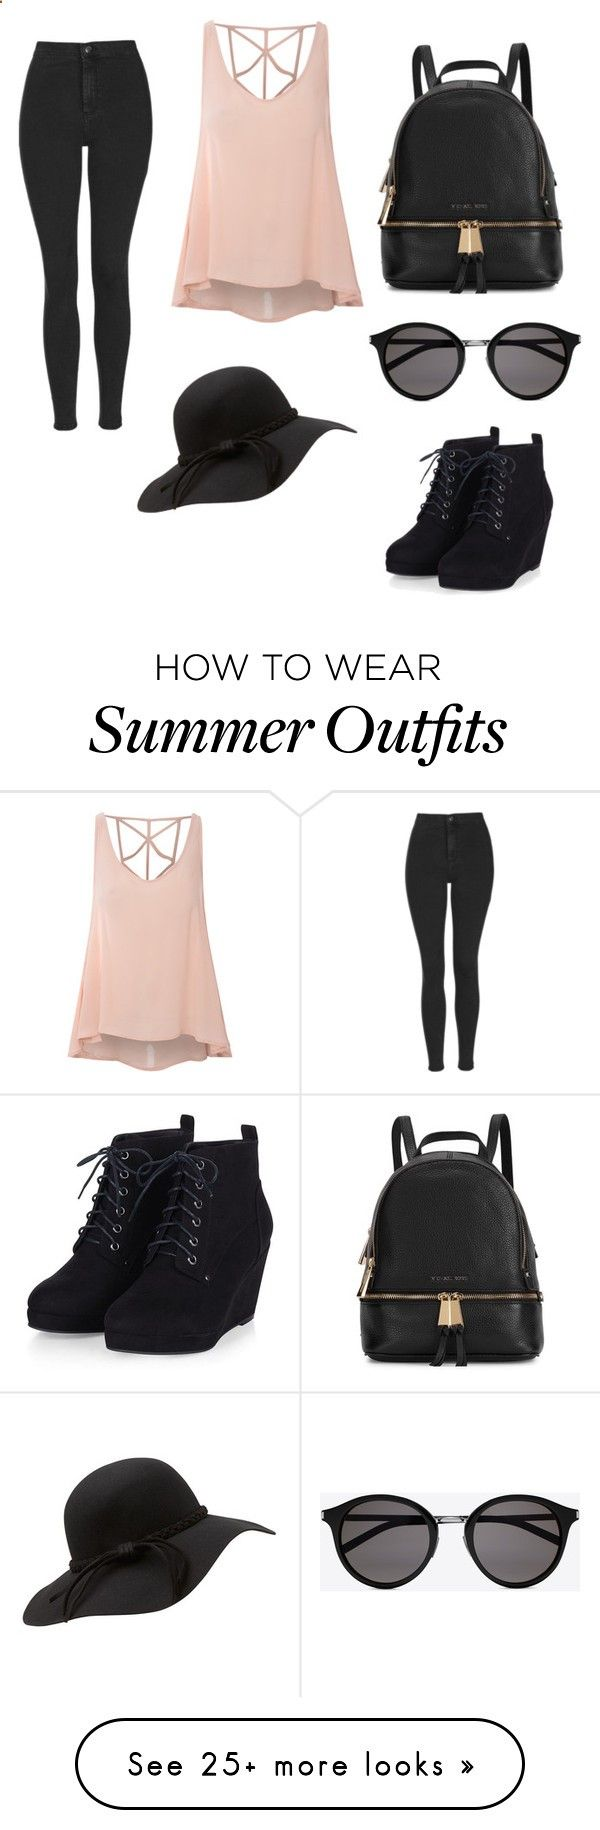 Summer shopping outfit by annatoms on Polyvore featuring Topshop, Glamorous, Michael Kors, Yves Saint Laurent, womens clothing, women, female, woman, misses and juniors